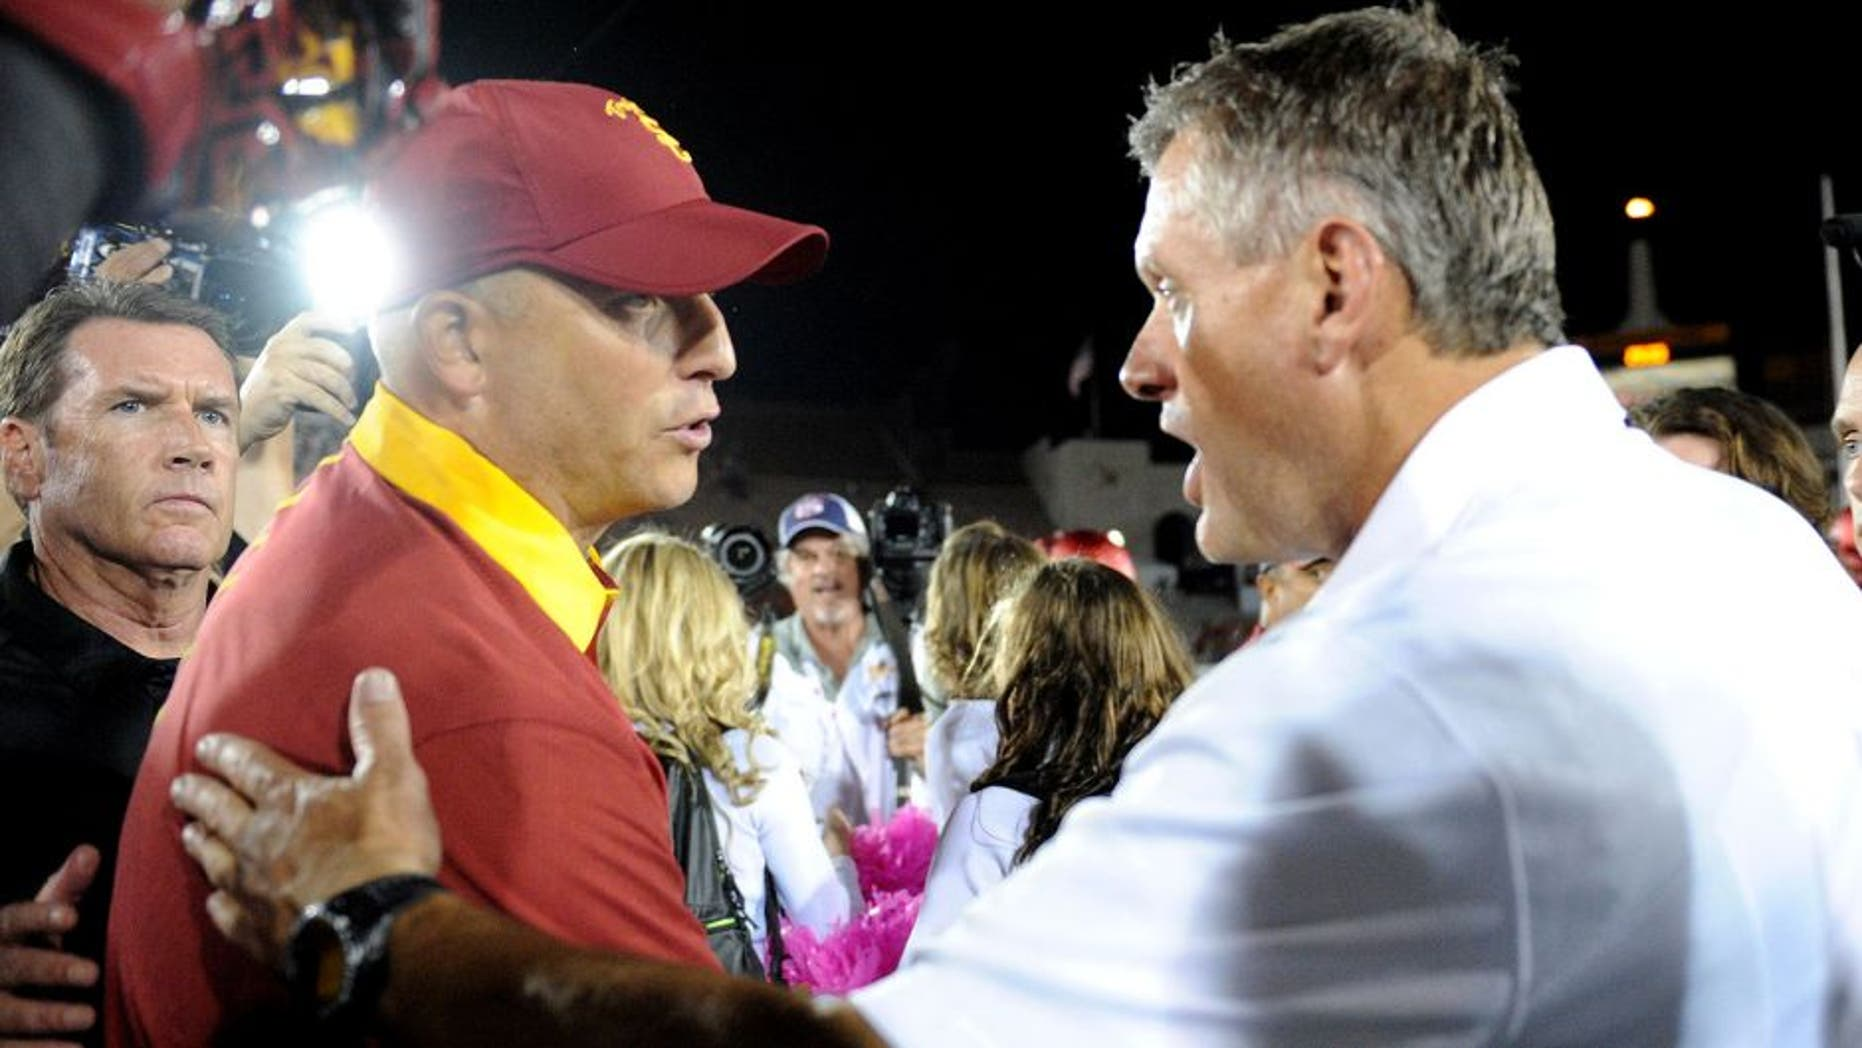 October 24, 2015; Los Angeles, CA, USA; Southern California Trojans interim head coach Clay Helton meets with Utah Utes head coach Kyle Whittingham following the 42-24 victory at Los Angeles Memorial Coliseum. Mandatory Credit: Gary A. Vasquez-USA TODAY Sports